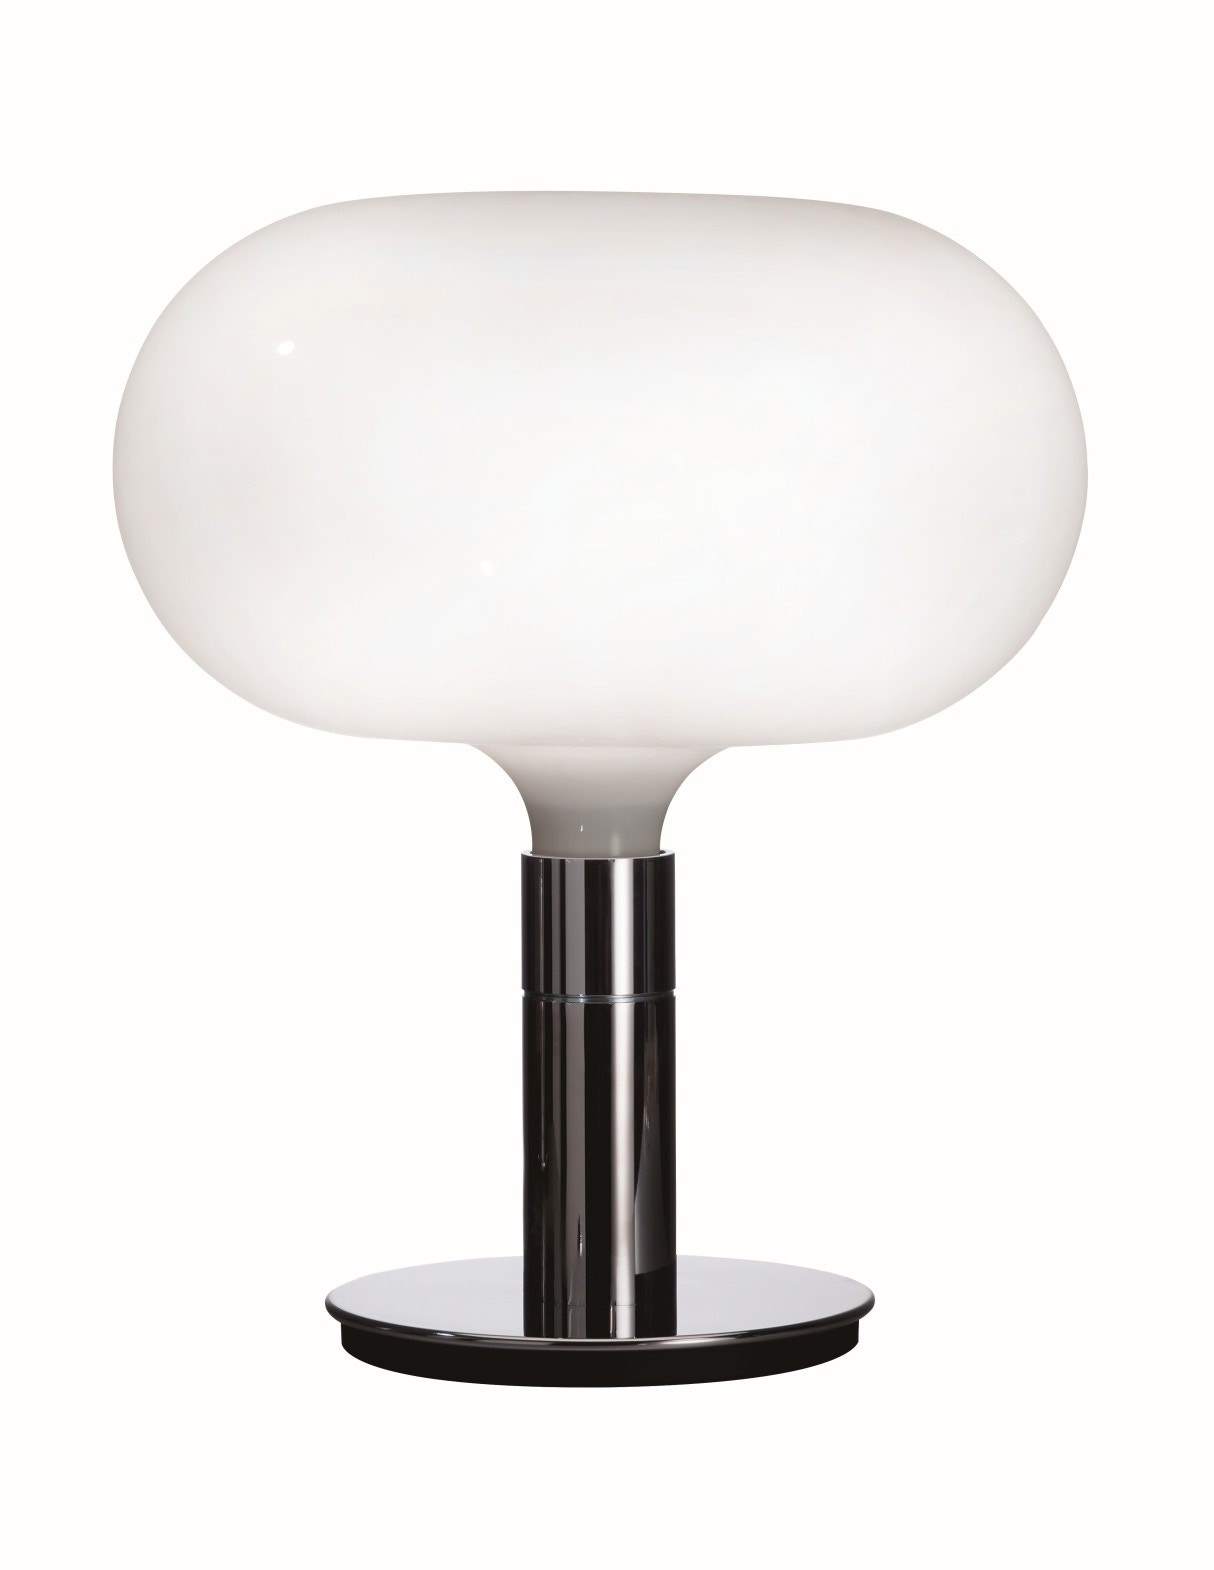 Nemo Italianaluce AM1N Table Lamp